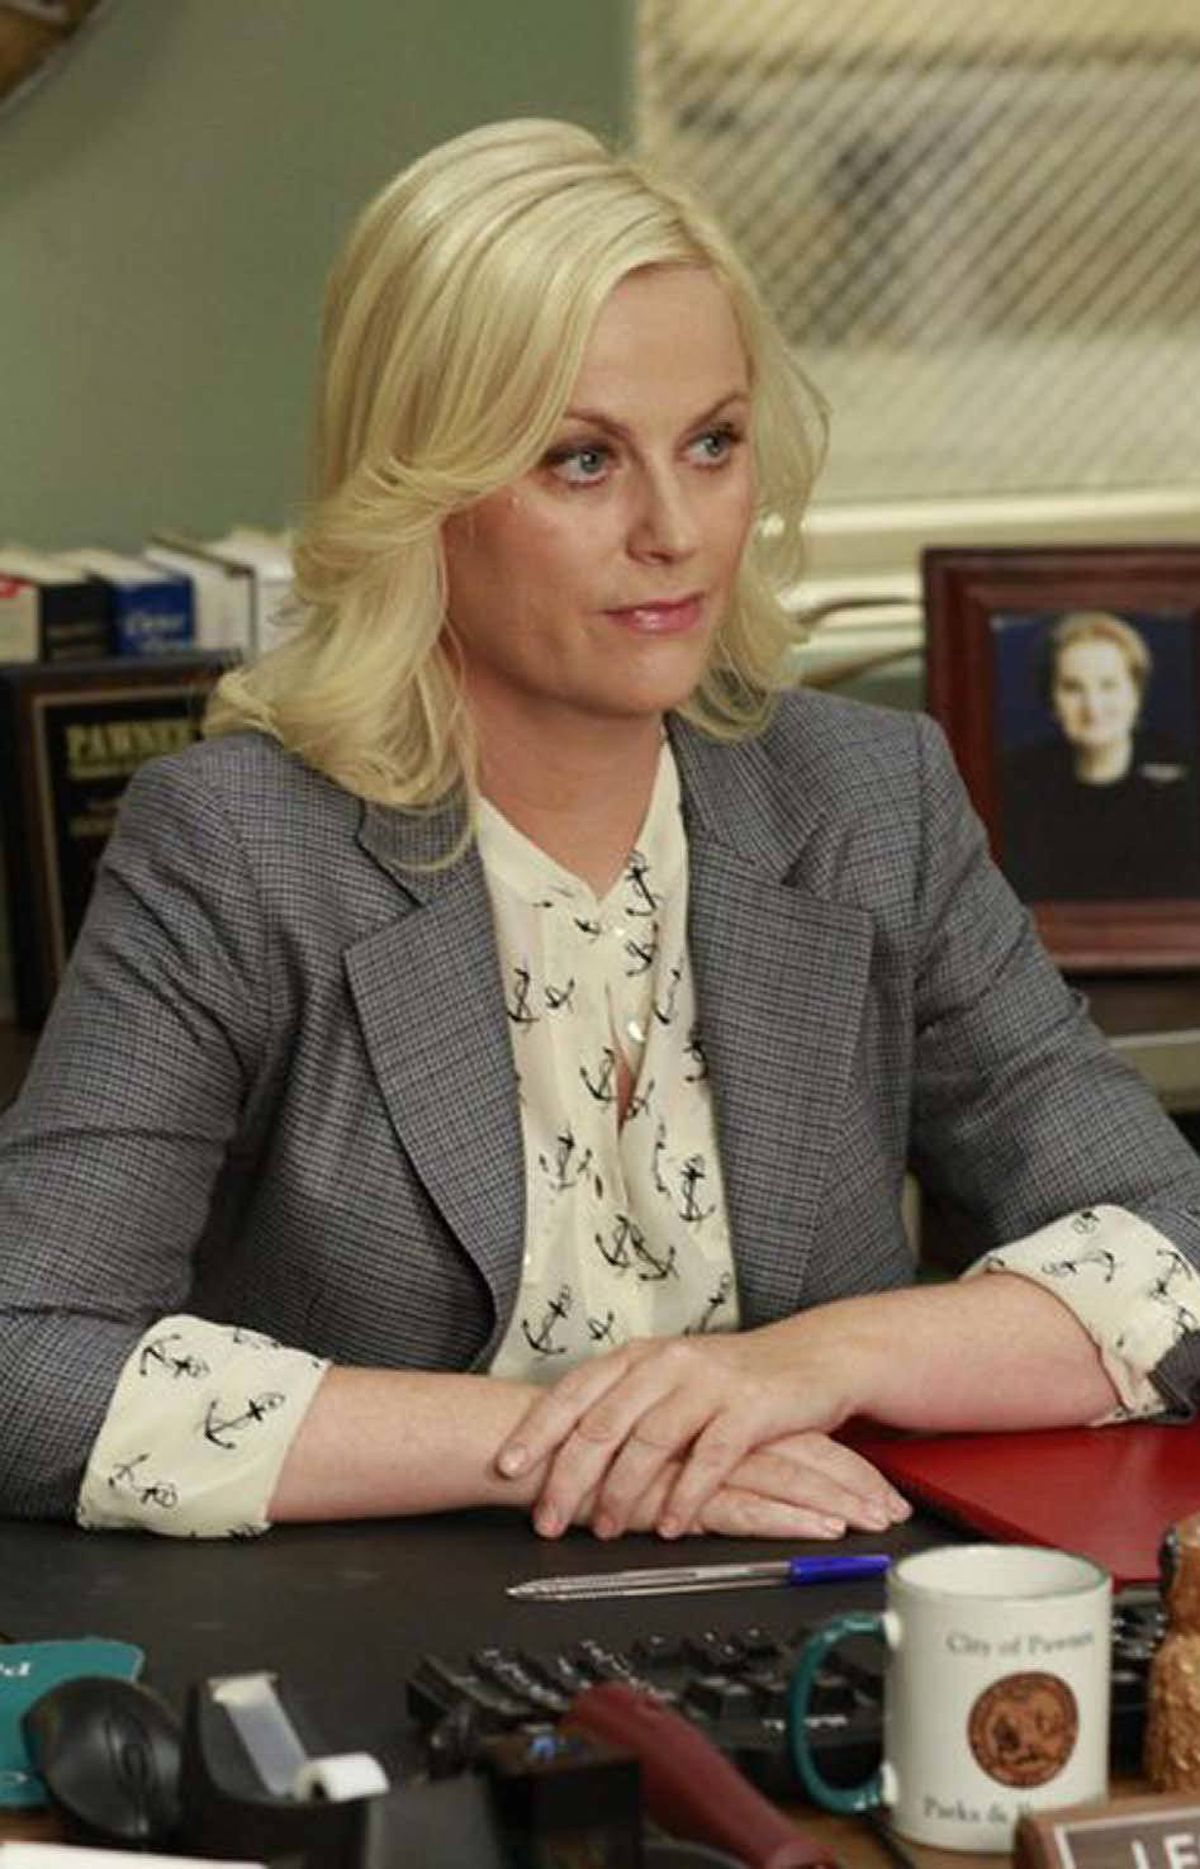 COMEDY Parks and Recreation NBC, CITY-TV, 8:30 p.m. In more progressive comedy stylings, this sitcom set in the government offices of fictional Pawnee, Ind., keeps getting funnier with each new episode. Tonight's show takes place on Valentine's Day and finds the hopelessly inept bureaucrat Leslie Knope (Amy Poehler) in a particularly buoyant mood. Besides planning her annual complicated scavenger hunt for her fellow employees, she also has to find a new man for her best friend Ann (Rashida Jones).